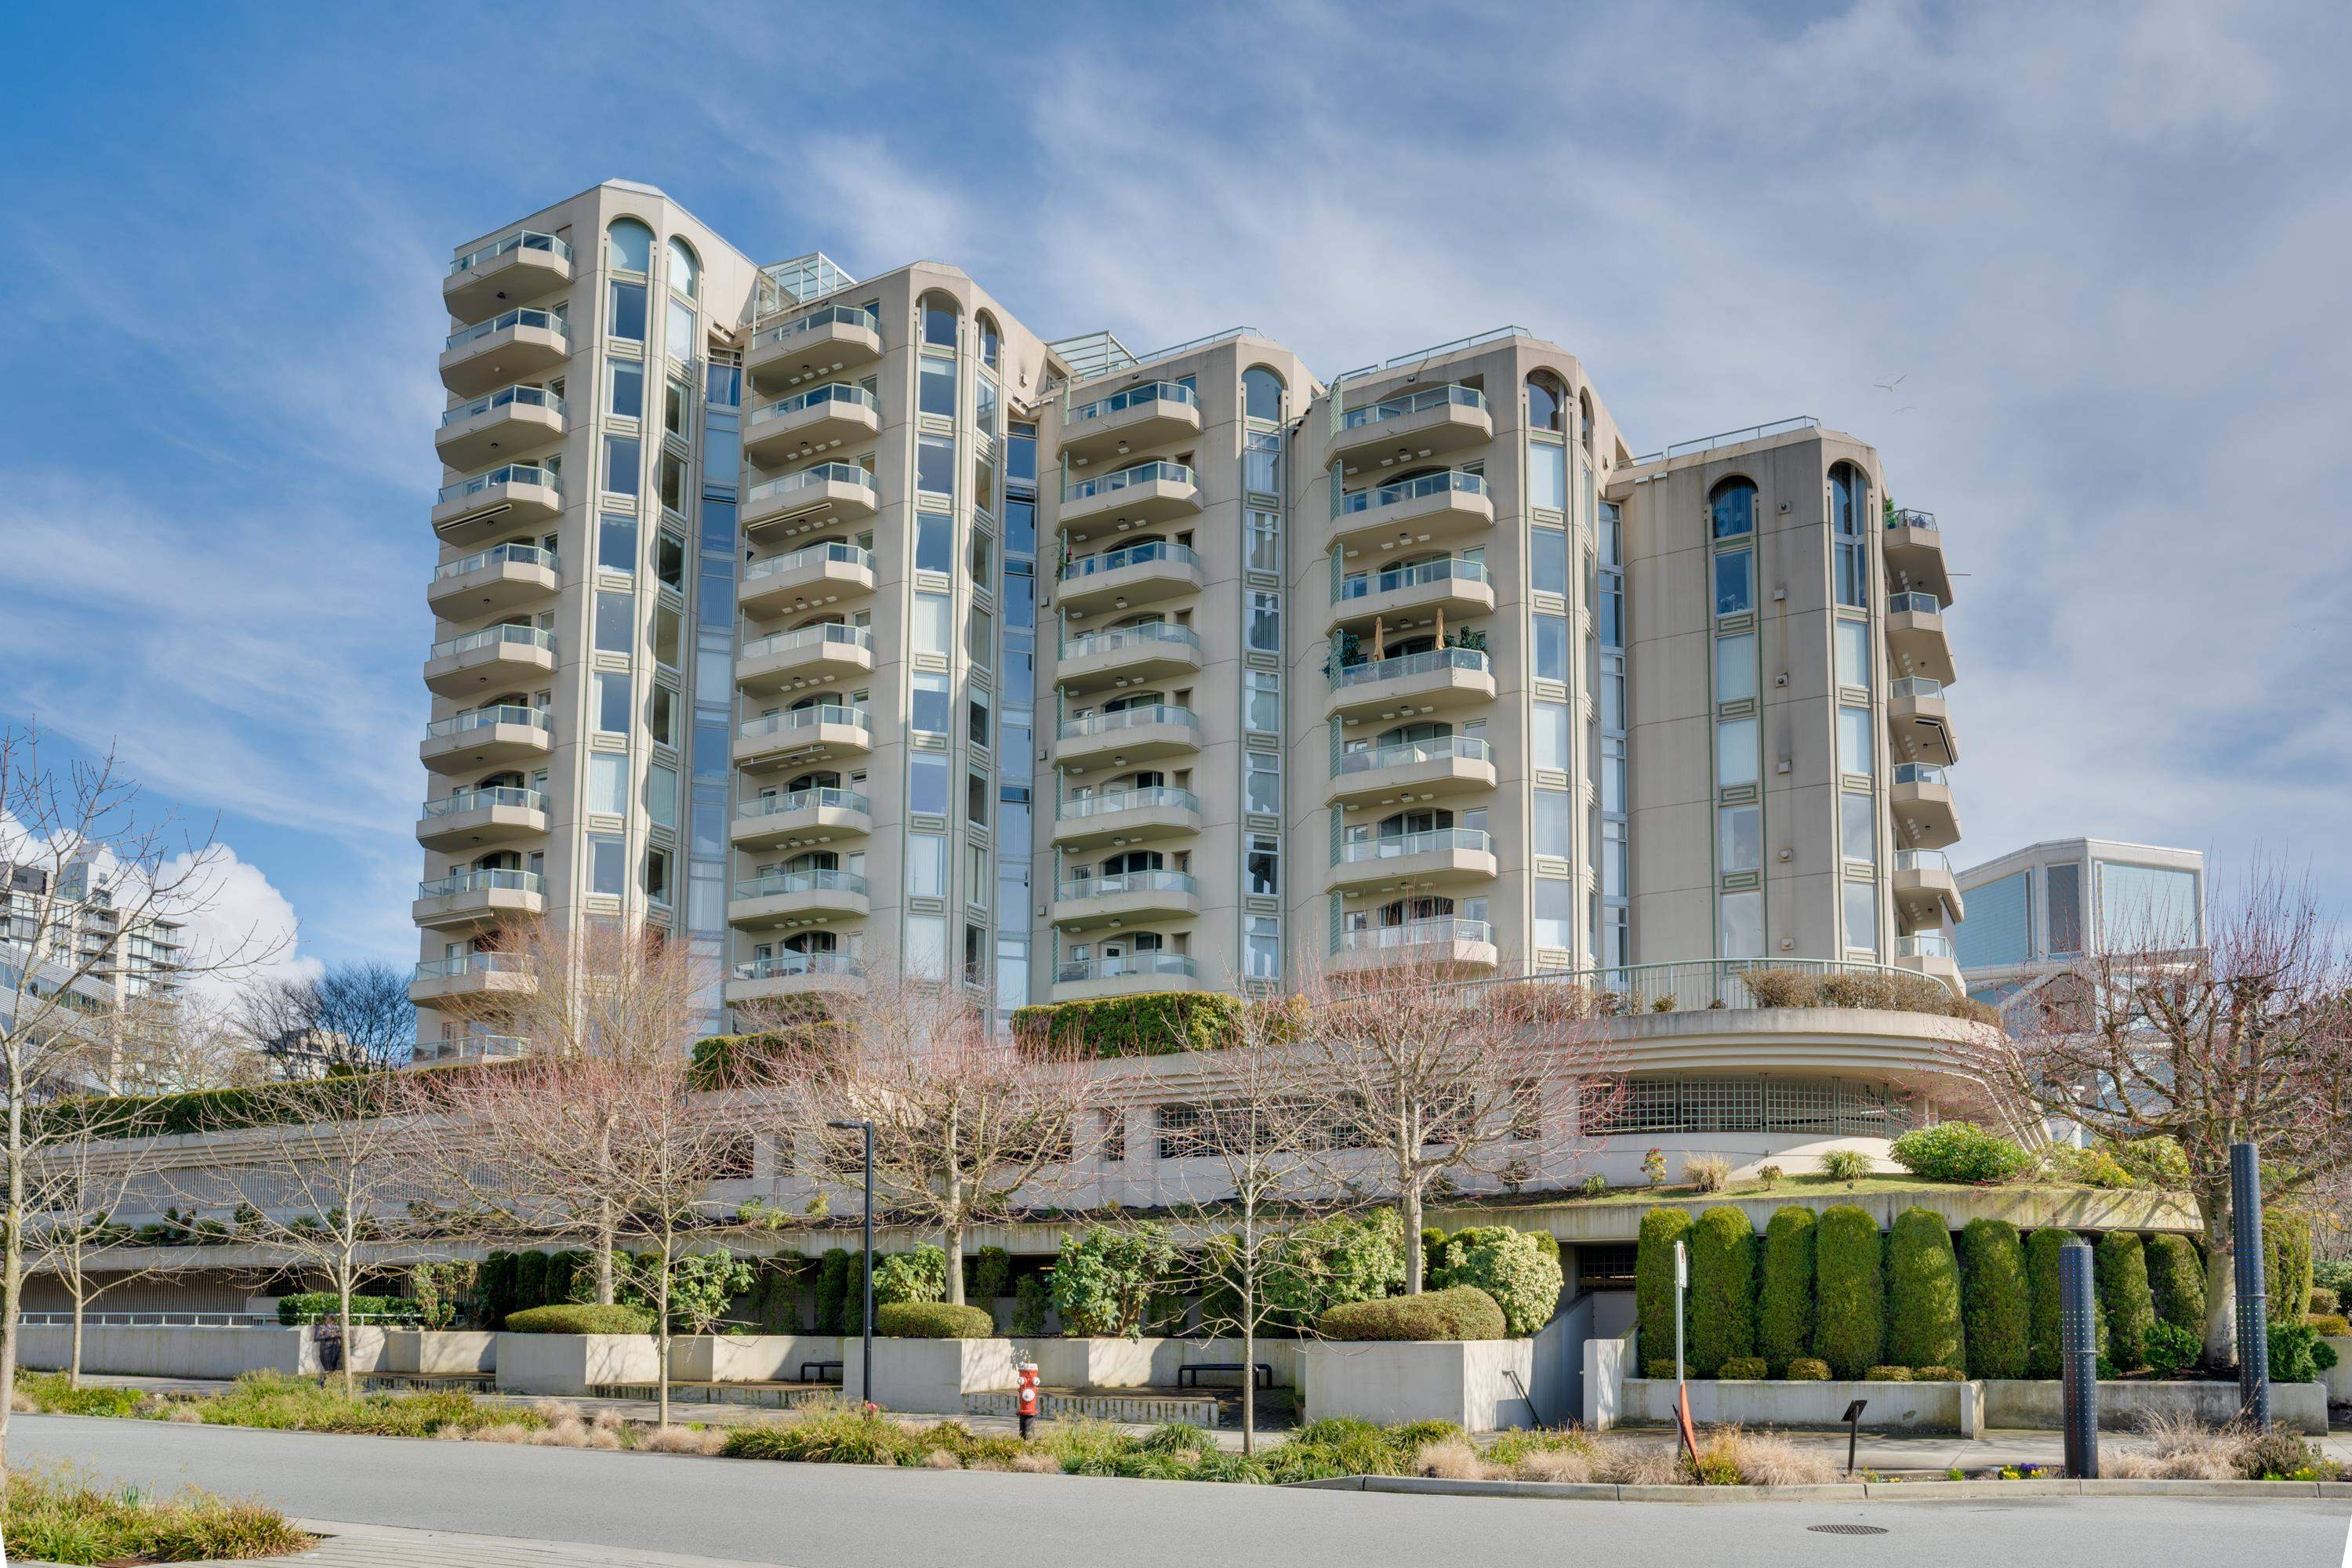 405 168 CHADWICK COURT - Lower Lonsdale Apartment/Condo for sale, 3 Bedrooms (R2619951) - #1